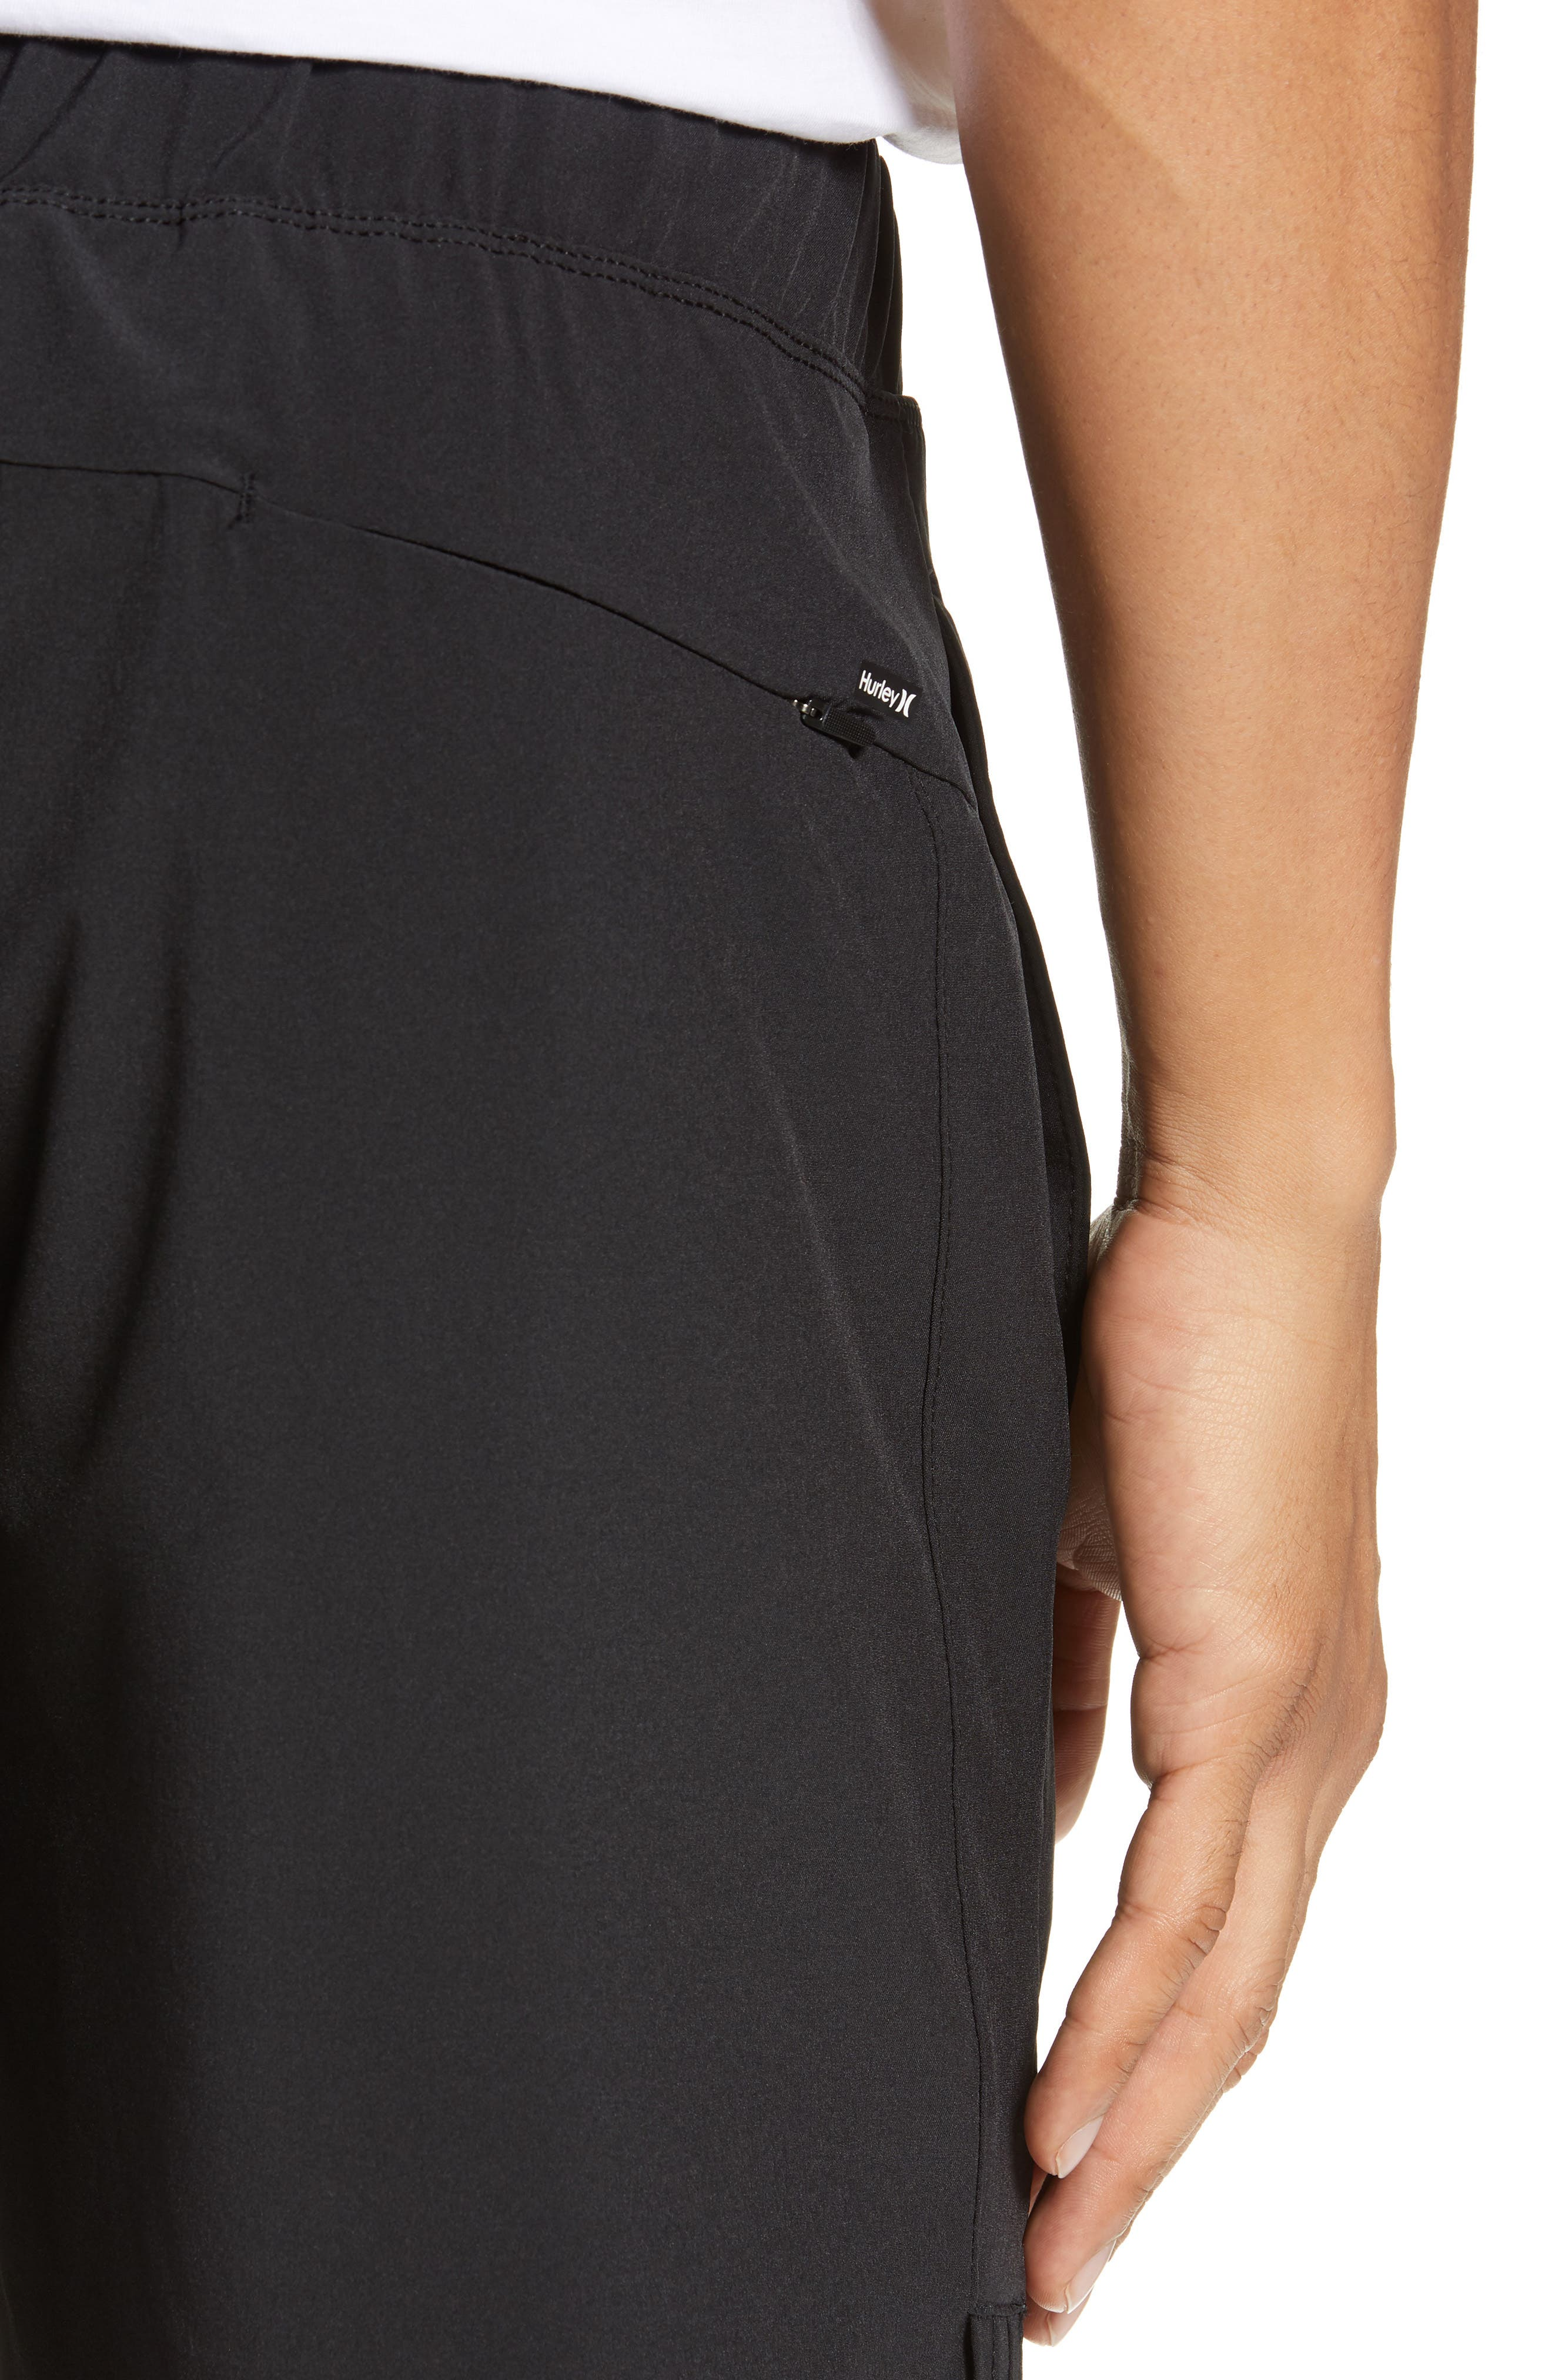 Alpha Trainer 2.0 Recycled Polyester Shorts,                             Alternate thumbnail 4, color,                             BLACK